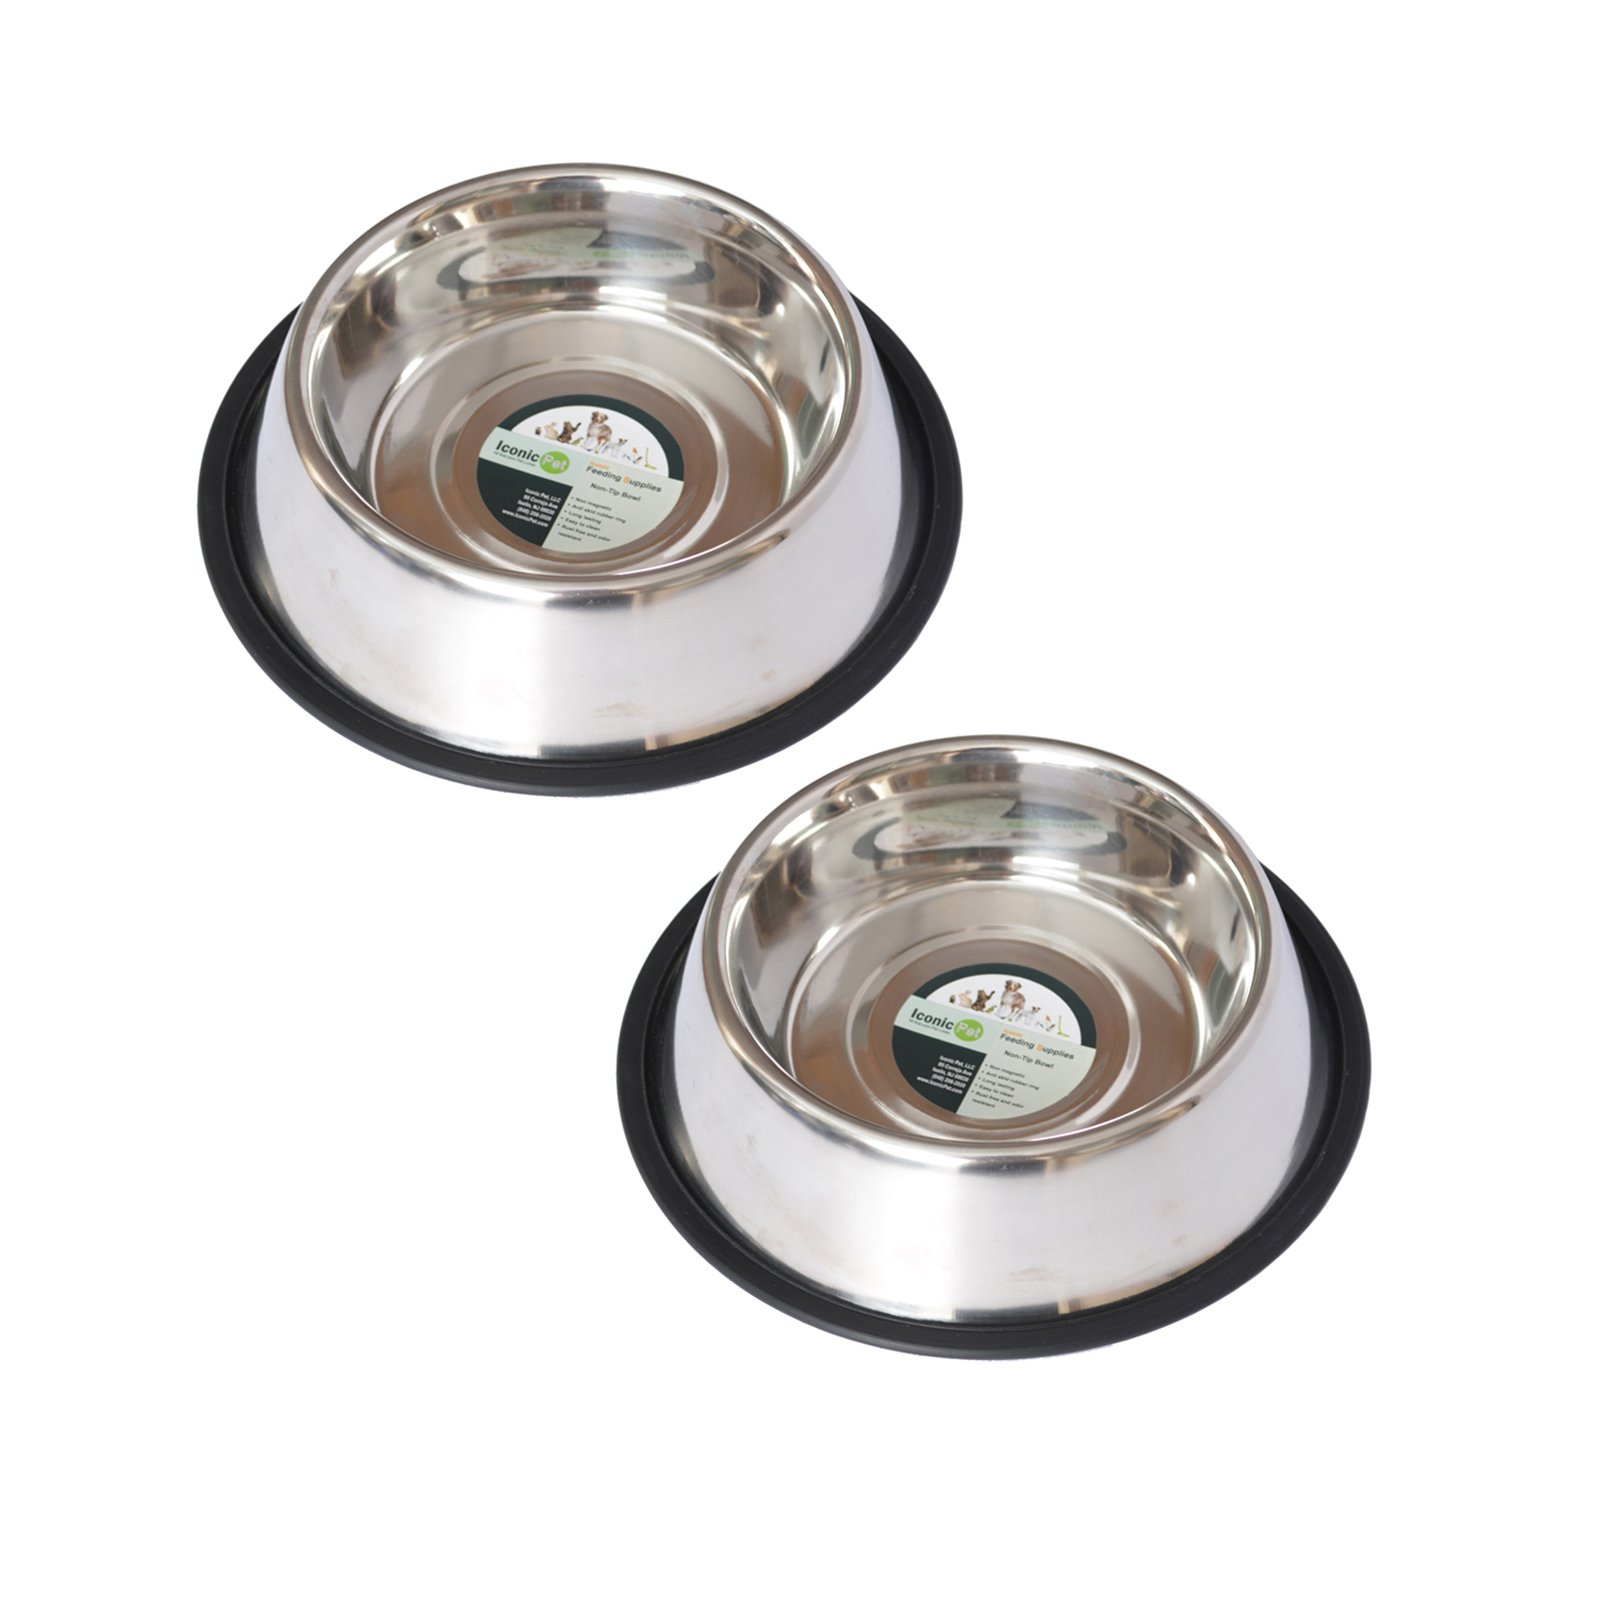 2-Pack Stainless Steel Non-Skid Pet Bowl For Dog or Cat, 24 Oz, 3 Cup